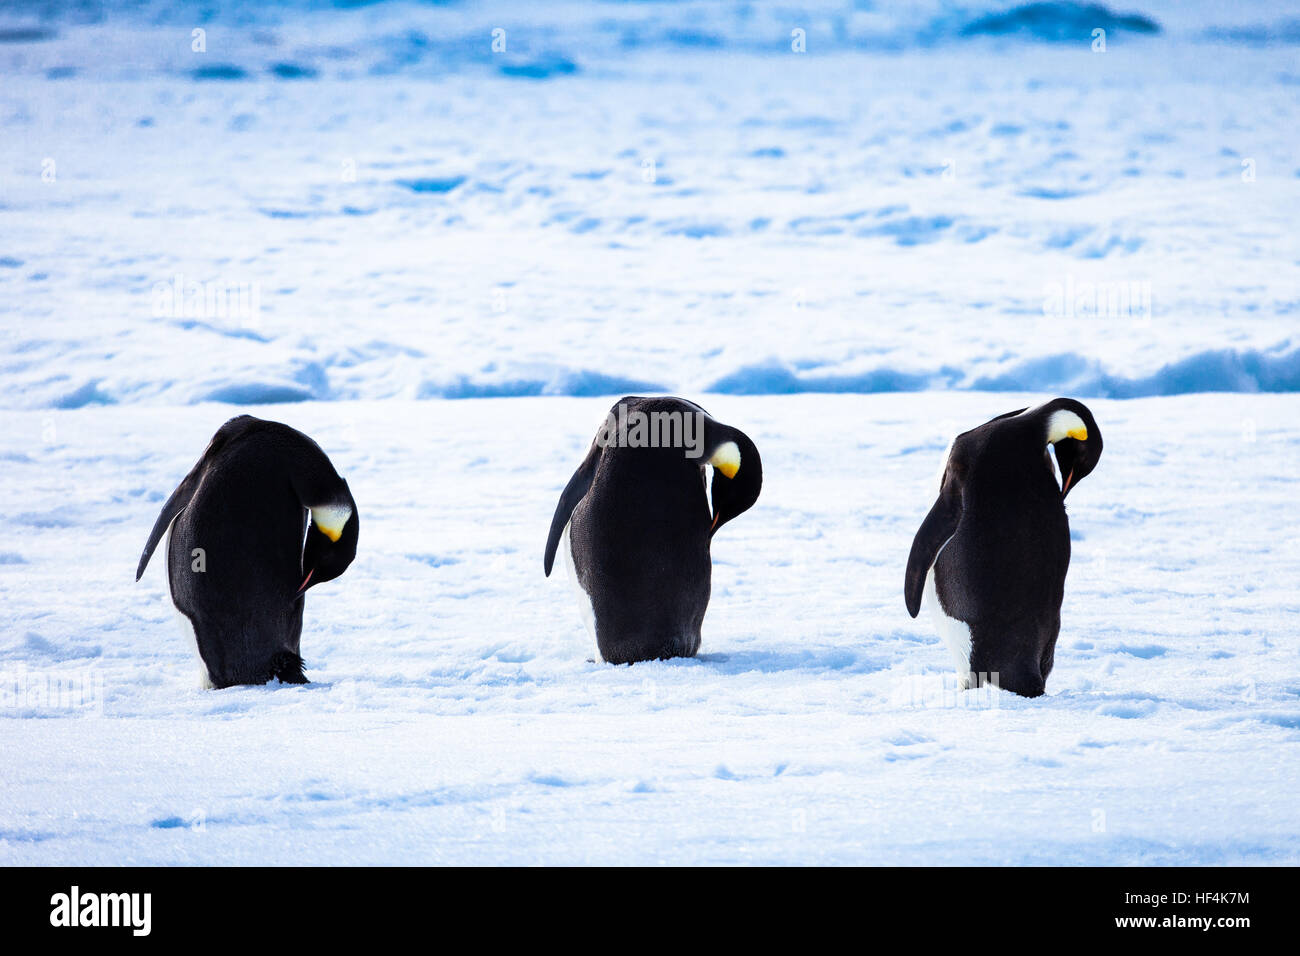 Three Emperor penguins preening, cleaning and replenishing the oils on their feathers. Antarctica - Stock Image